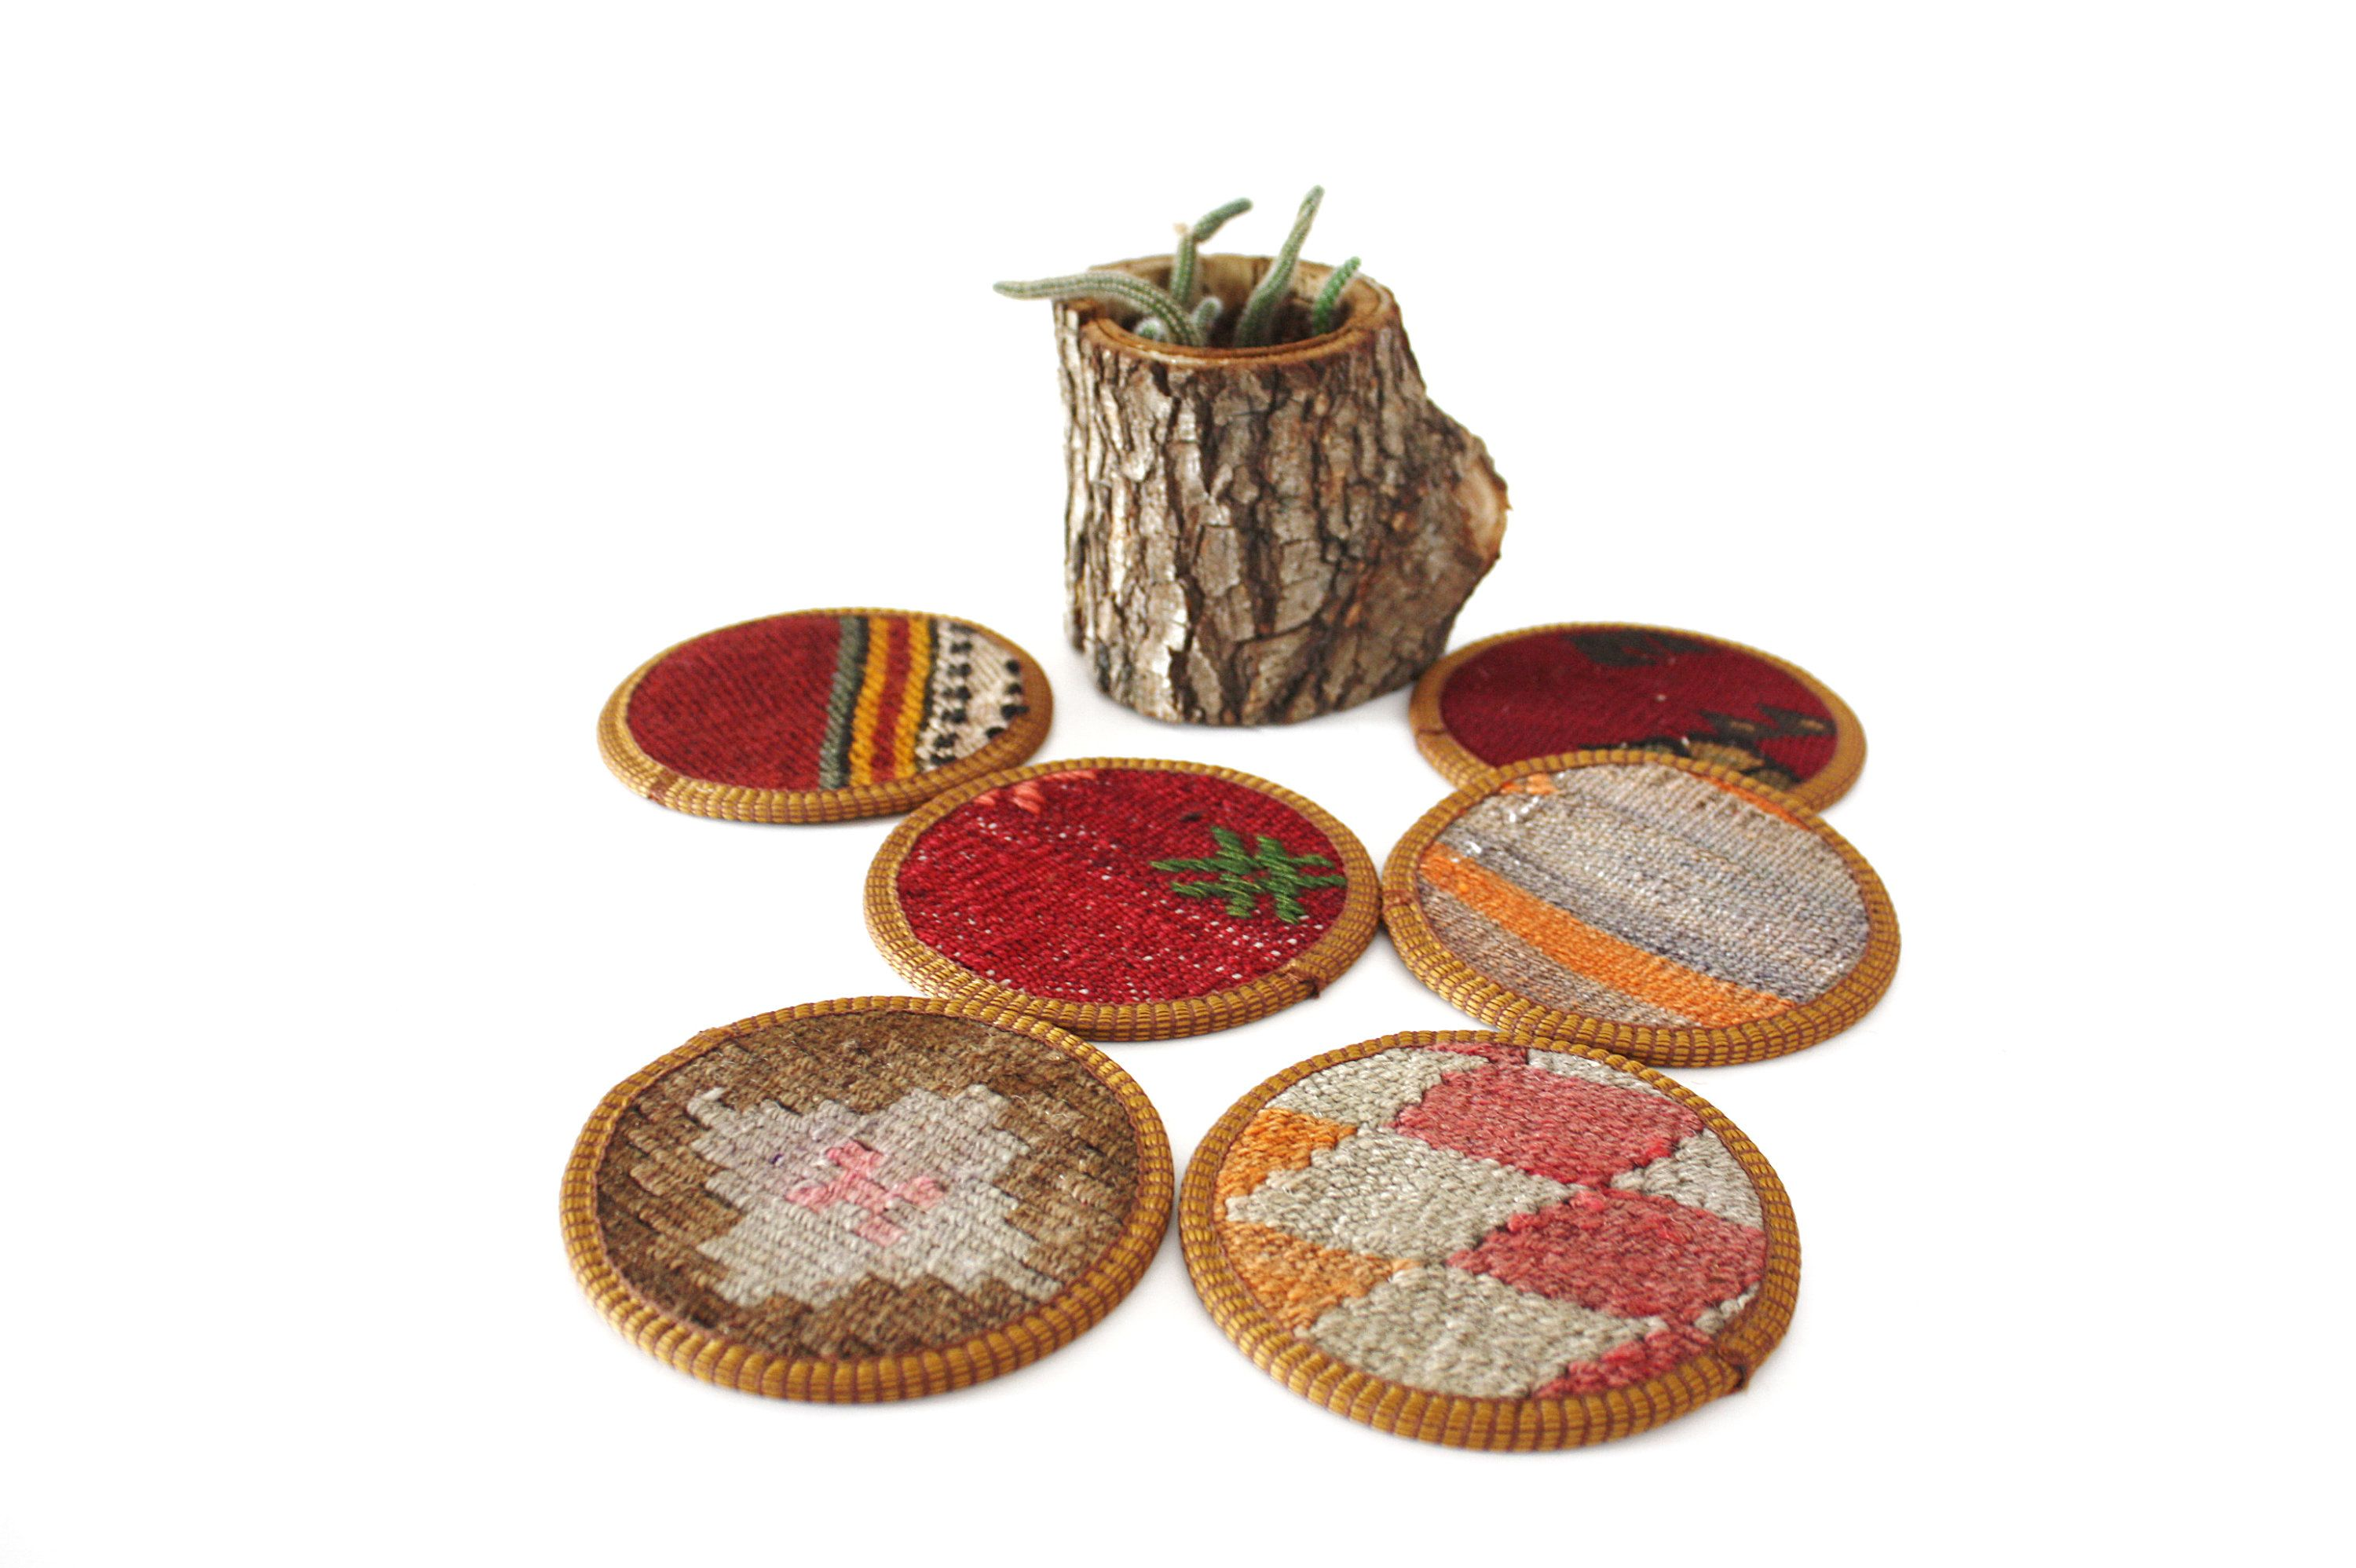 kilim coasters, cup coaster, coffee coasters, beer coasters, drink coaster, tea mug coaster, rug coaster, home decor, coaster, Set (6 pcs)